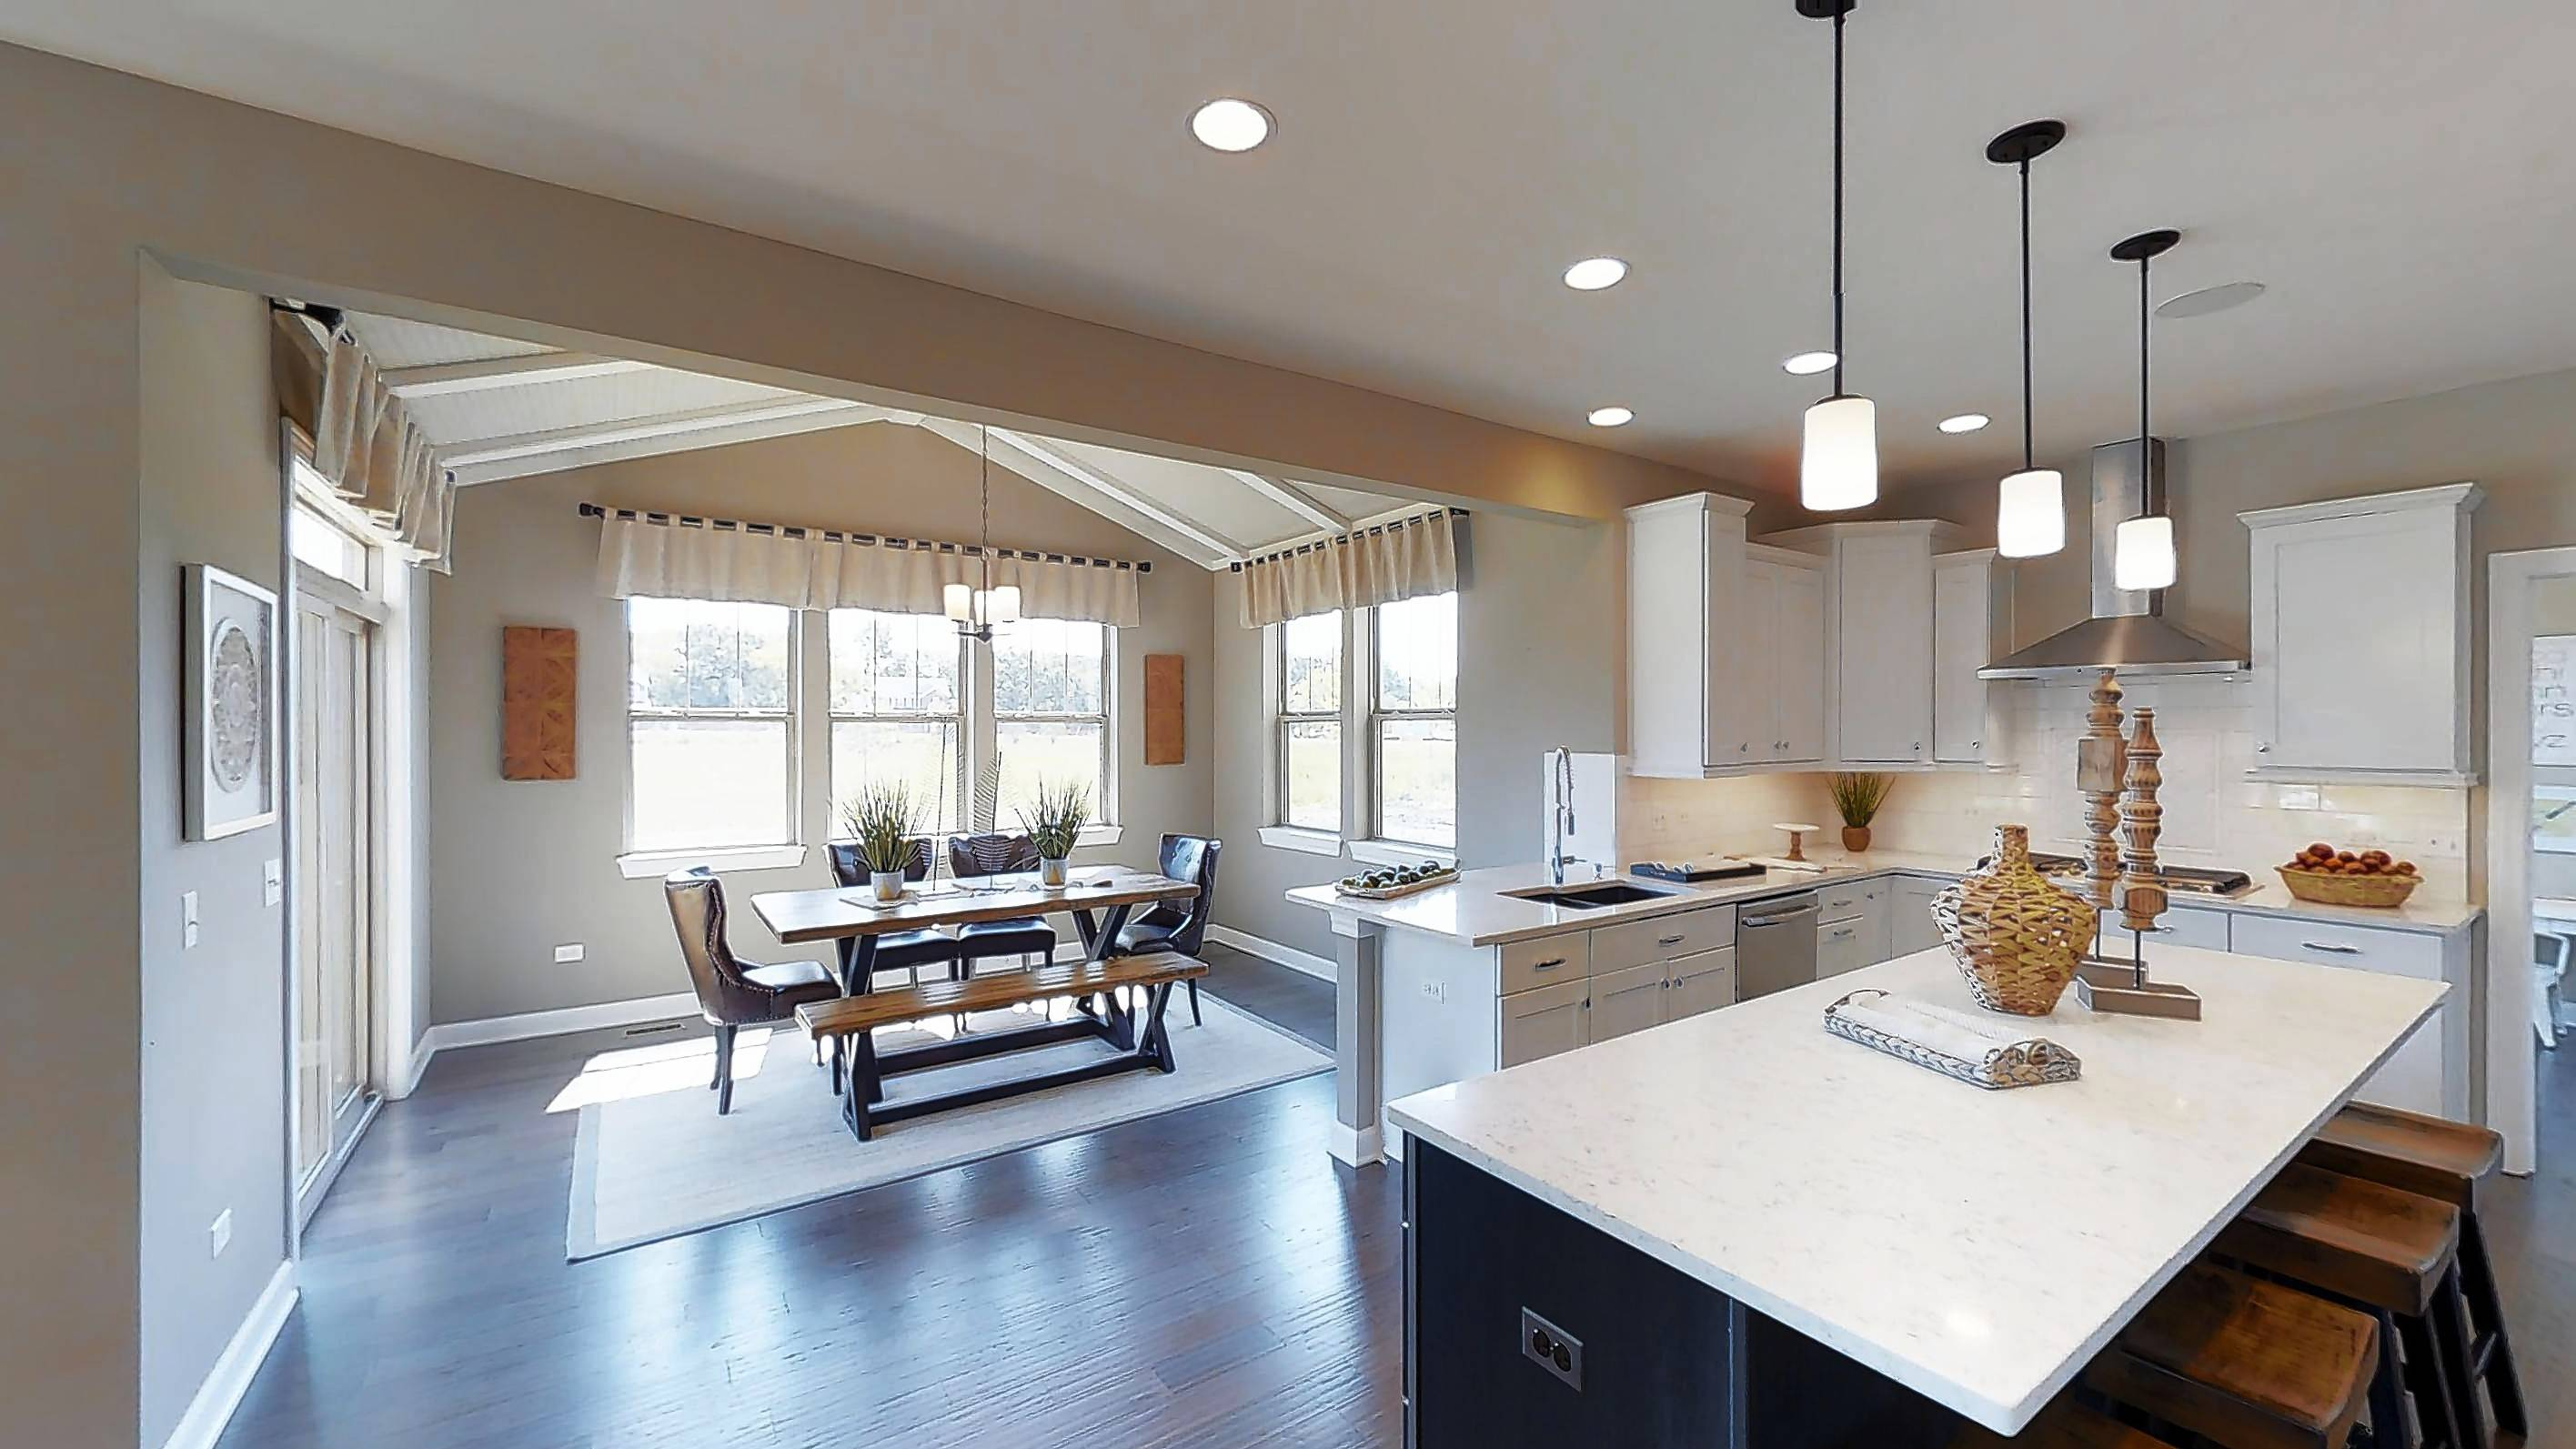 The model home showcases an open plan and a modern rustic interior design that fits in with the rural atmosphere of Hawthorn Woods.